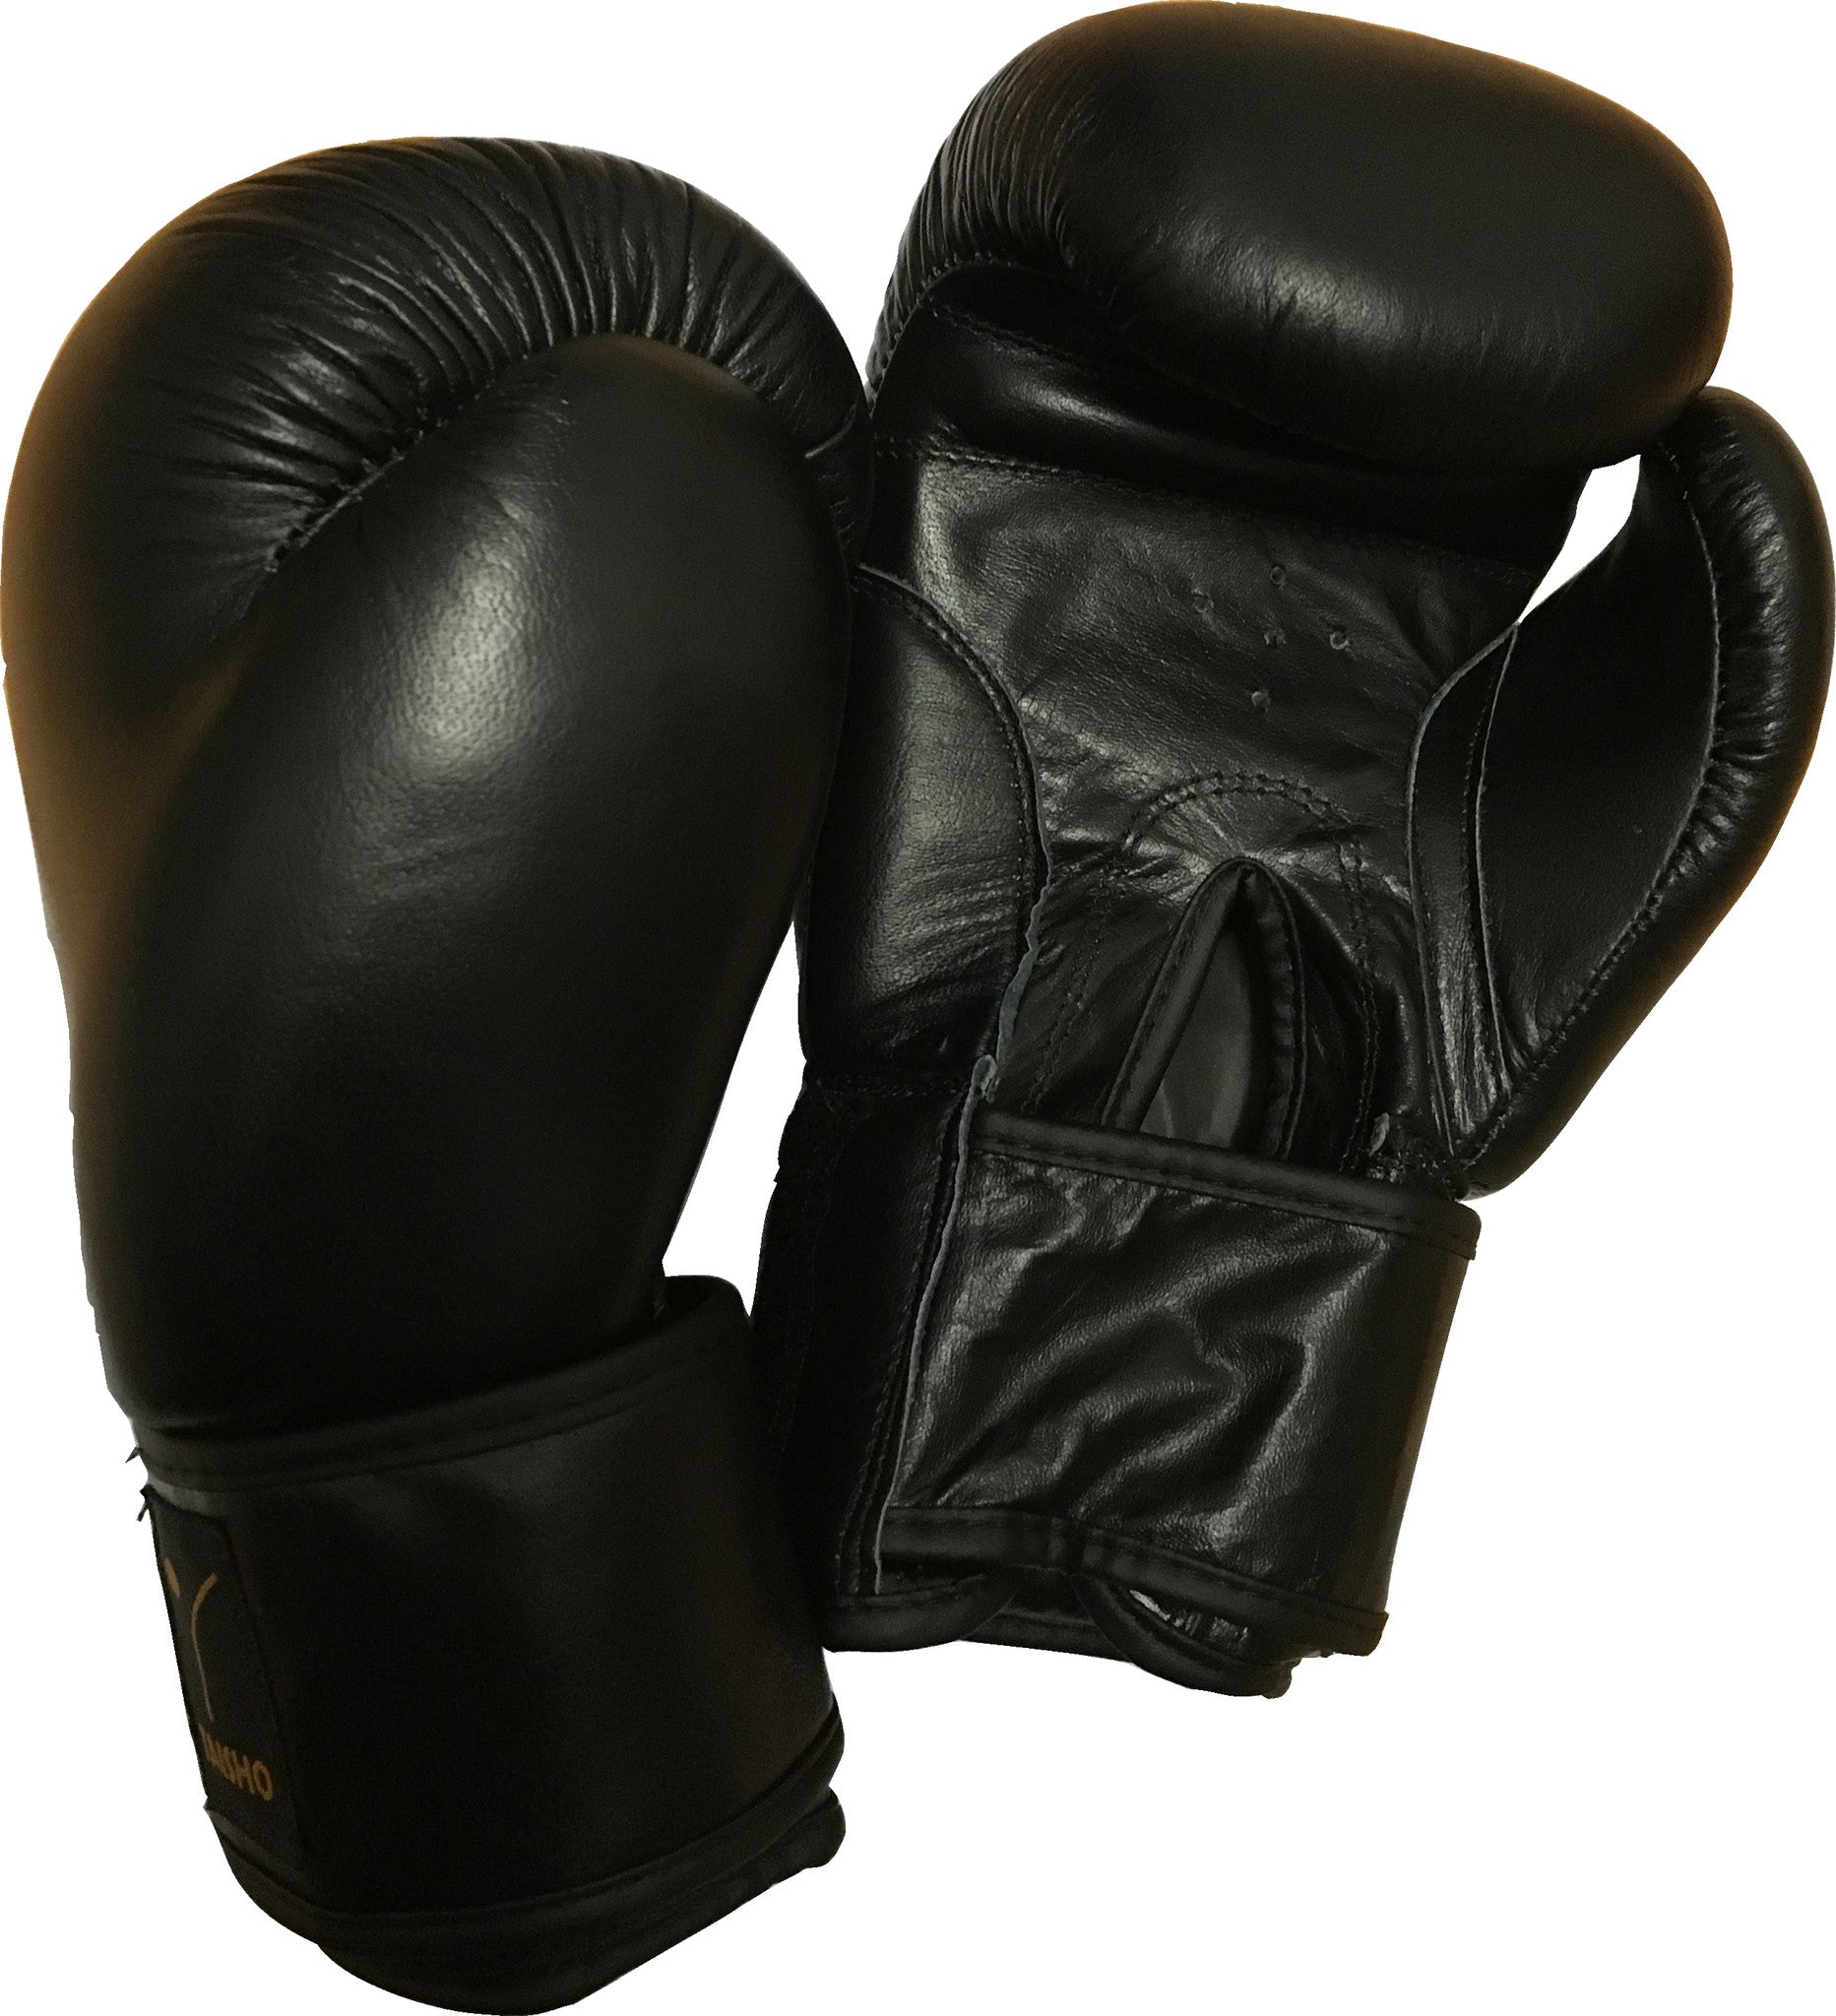 taisho leather boxing gloves 8oz 16oz martial art superstore